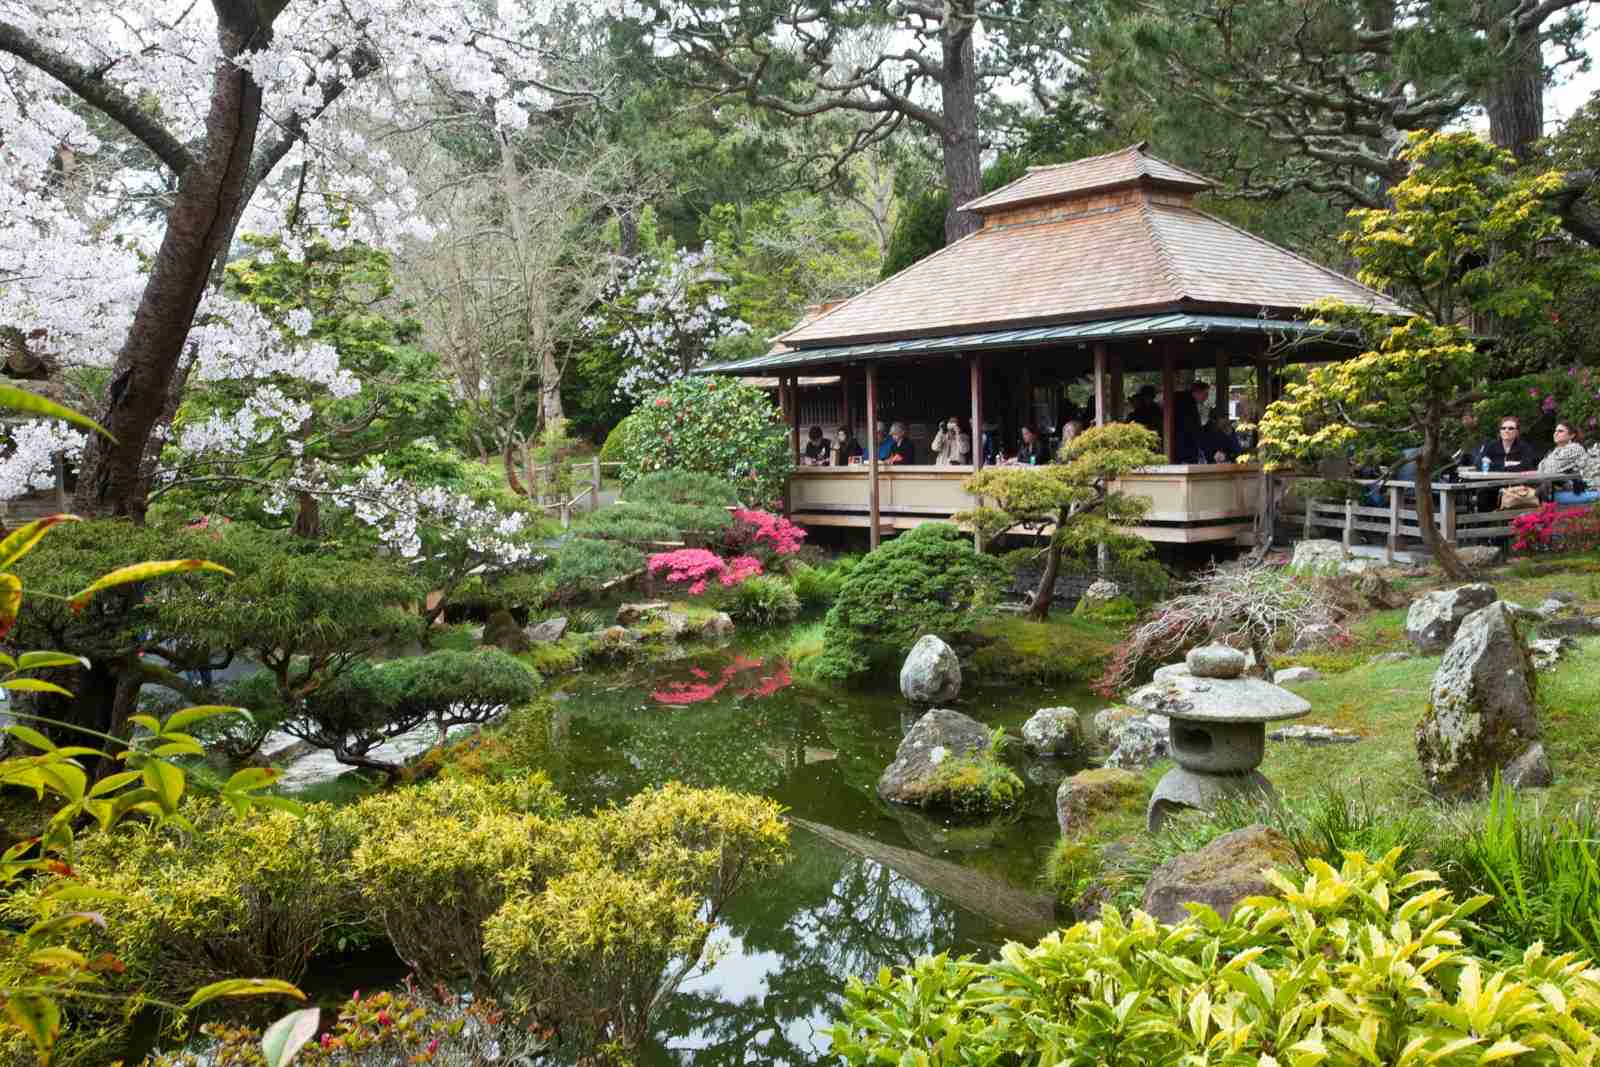 The Japanese Tea Garden at Golden Gate Park (Photo by John S Lander/LightRocket via Getty Images)